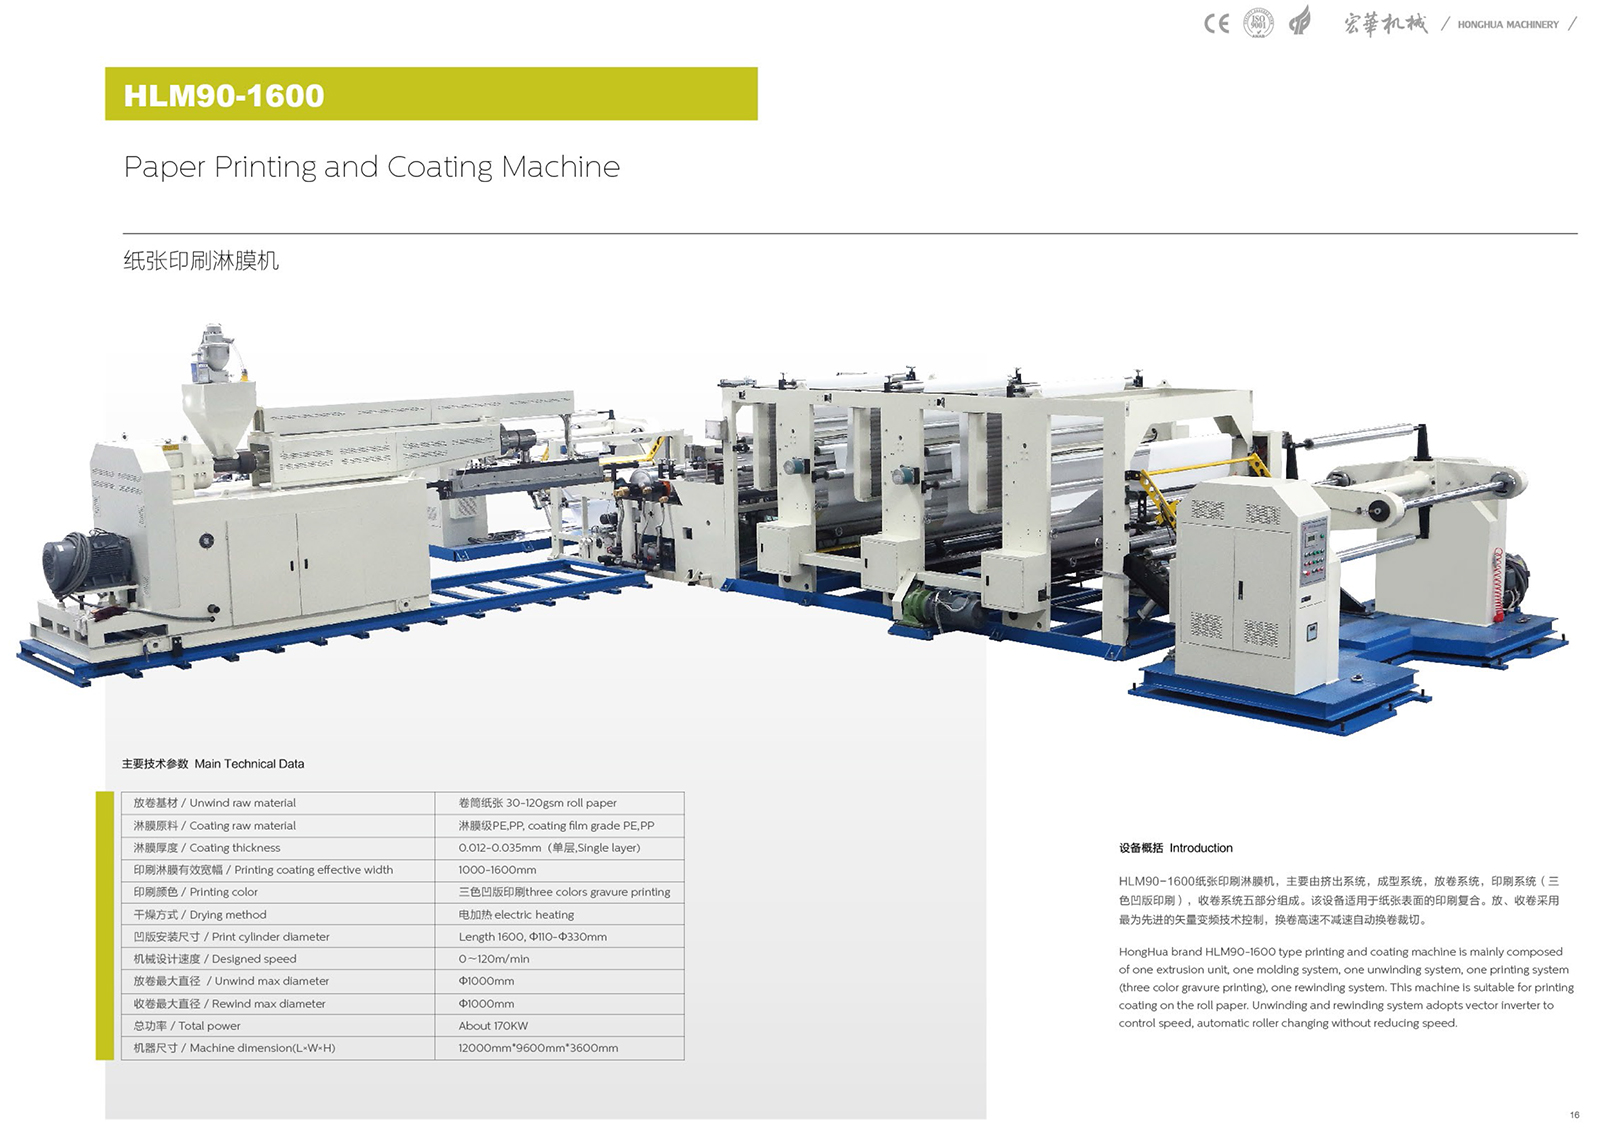 HLM90-1600 Paper printing and Coating Machine